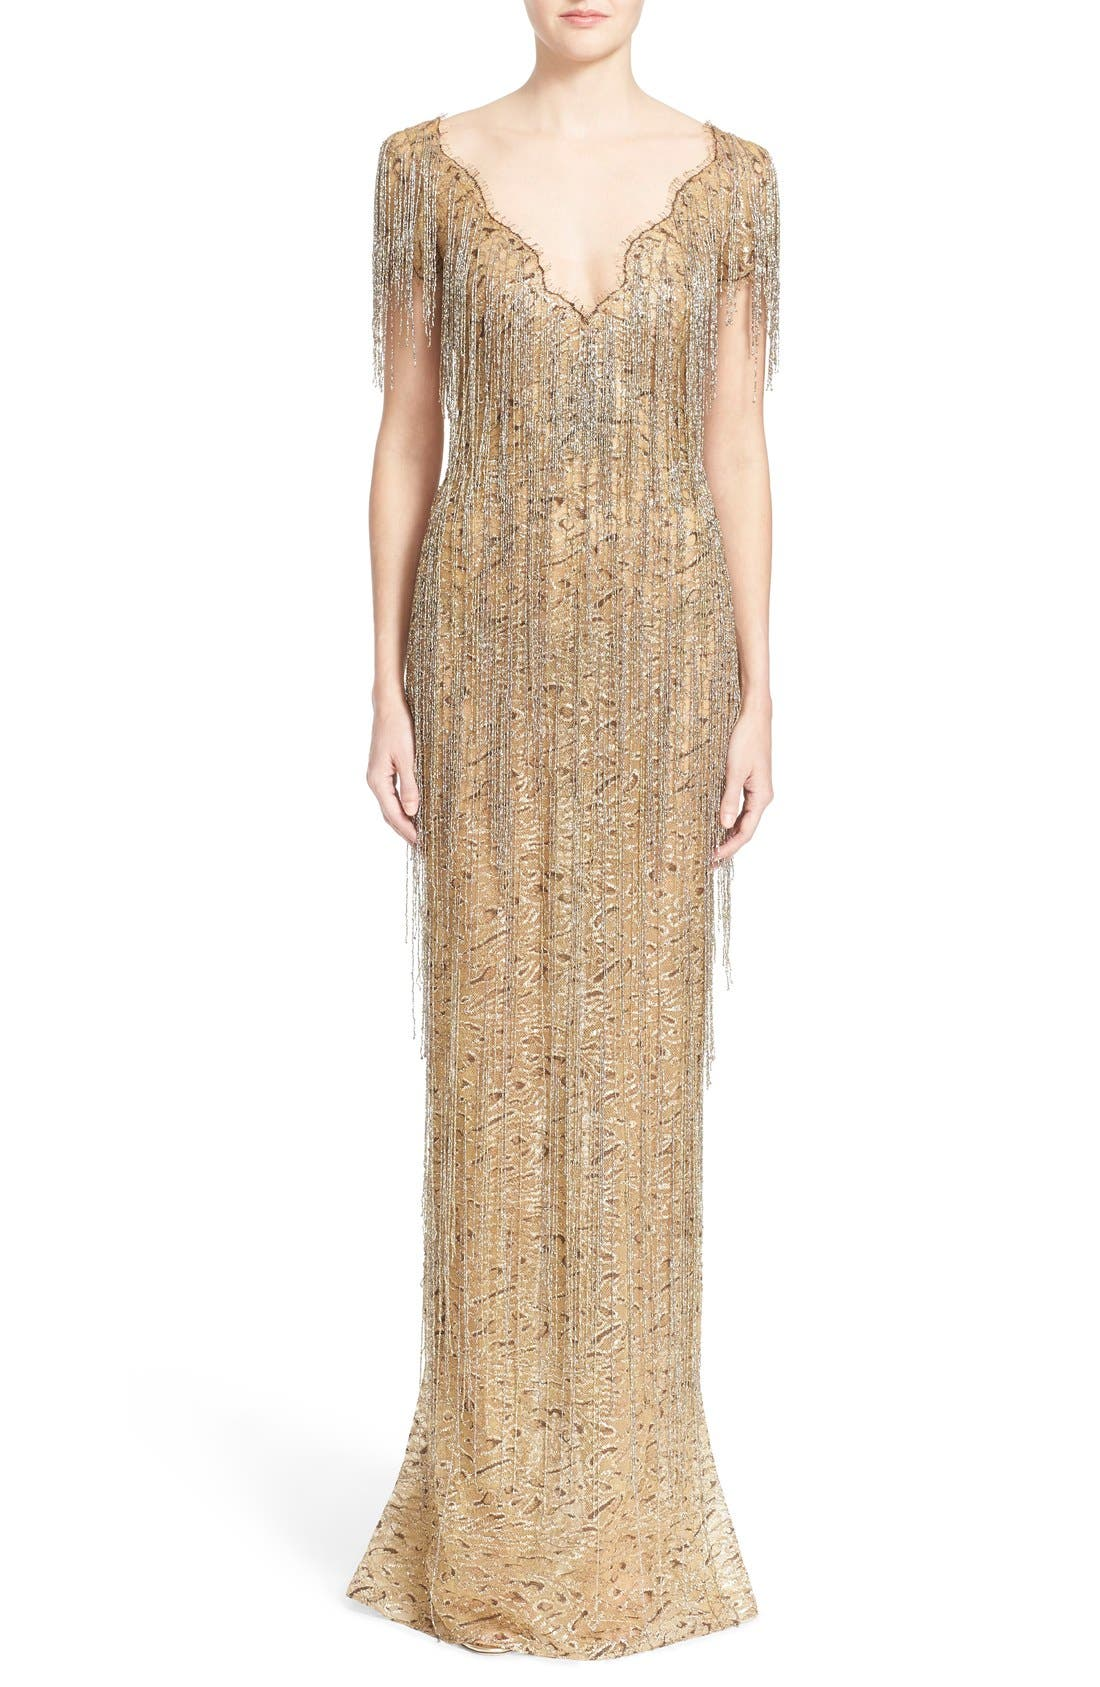 Alternate Image 1 Selected - Marchesa Bugle Bead Fringe Leopard Lace Column Gown